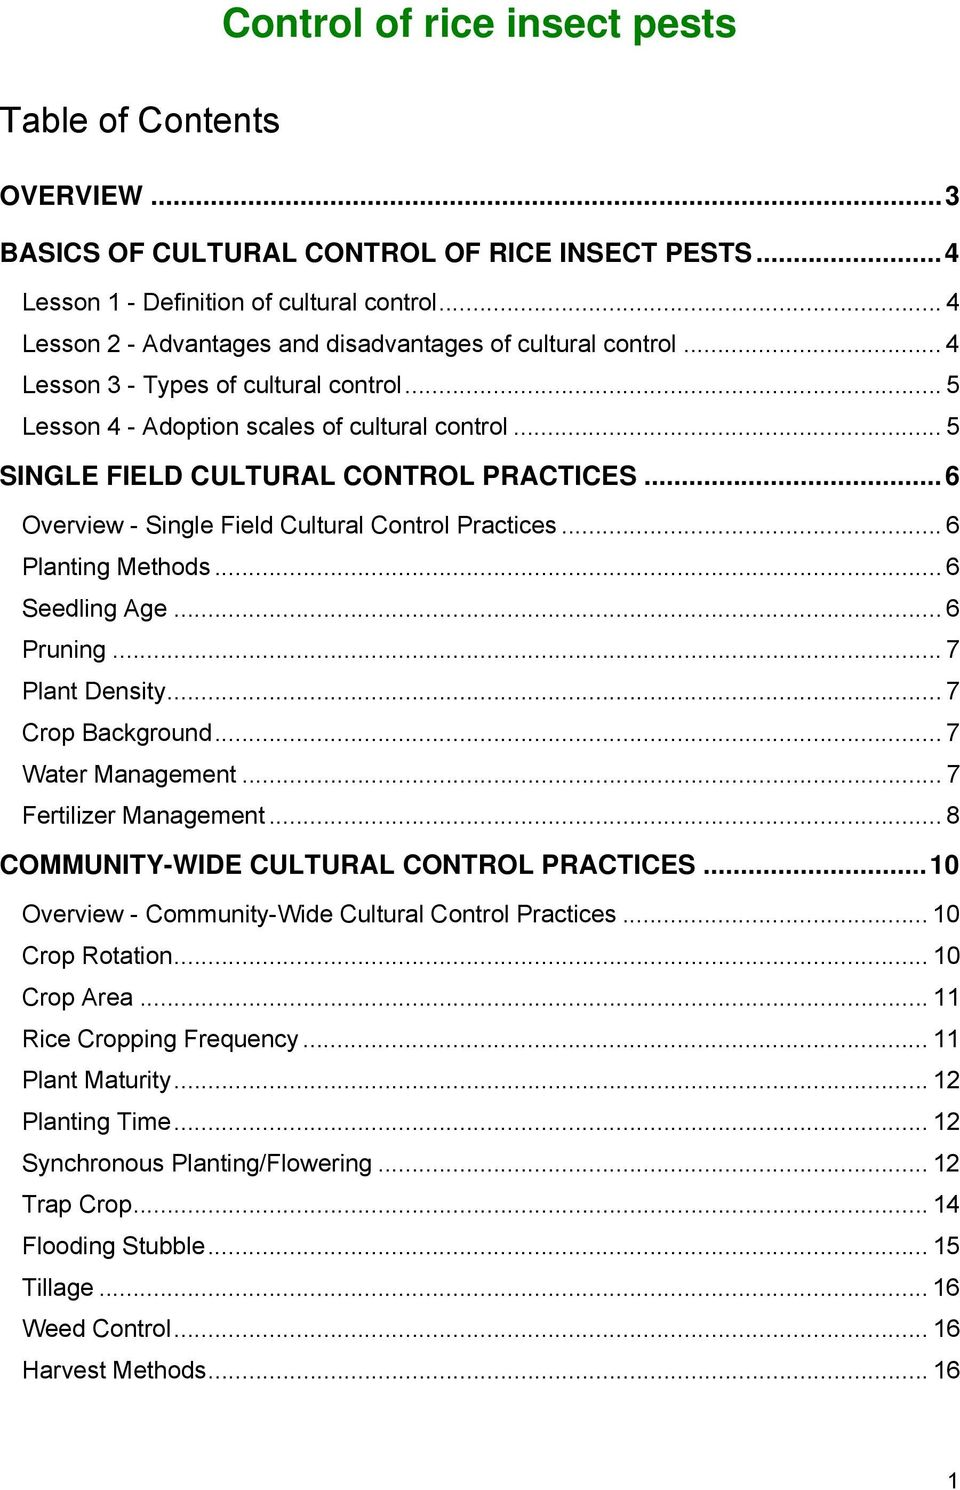 .. 5 SINGLE FIELD CULTURAL CONTROL PRACTICES...6 Overview - Single Field Cultural Control Practices... 6 Planting Methods... 6 Seedling Age... 6 Pruning... 7 Plant Density... 7 Crop Background.